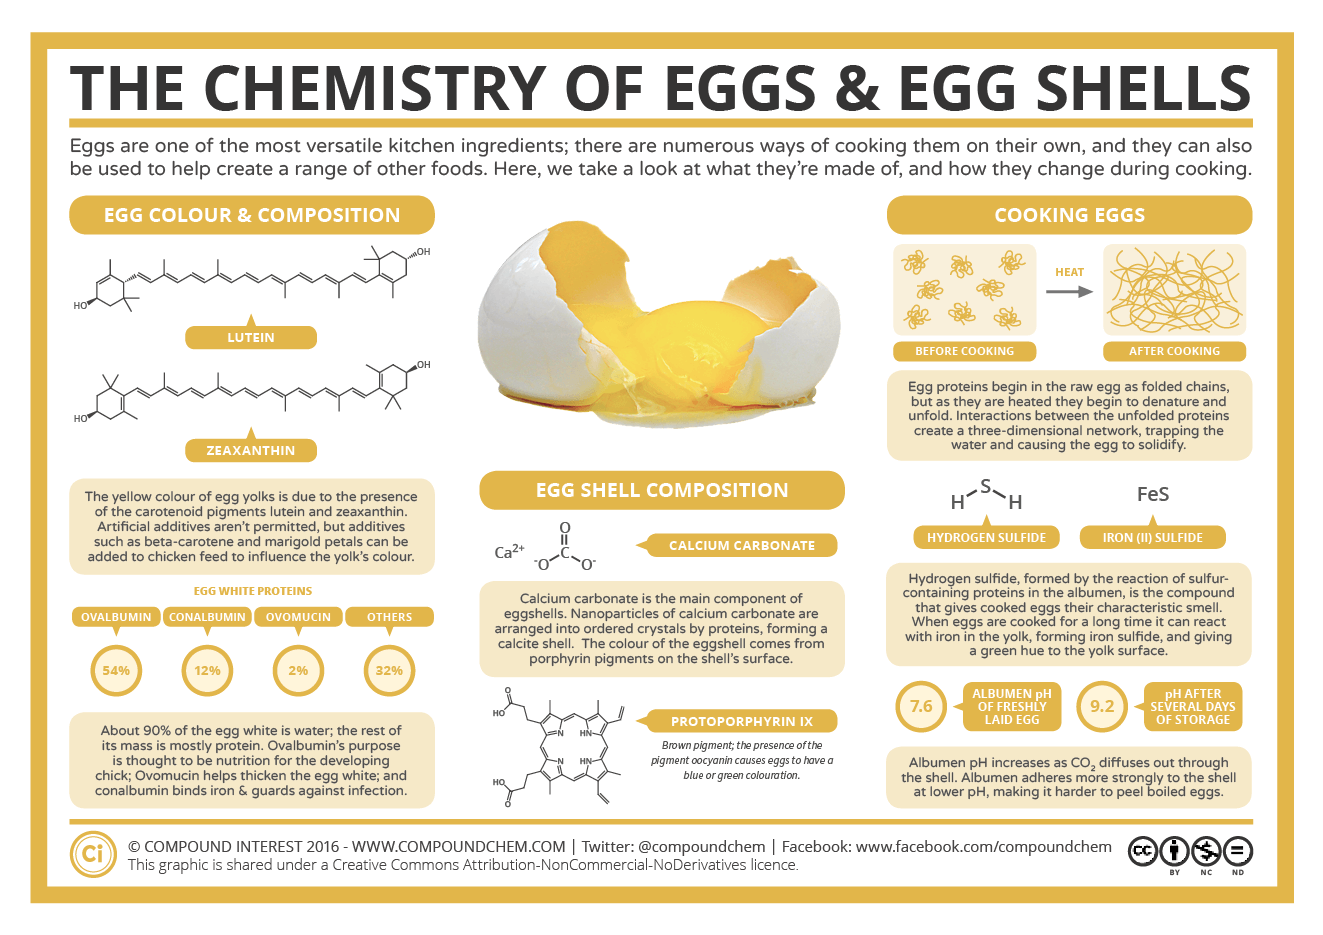 compound interest the chemistry of eggs egg shells the chemistry of eggs egg shells